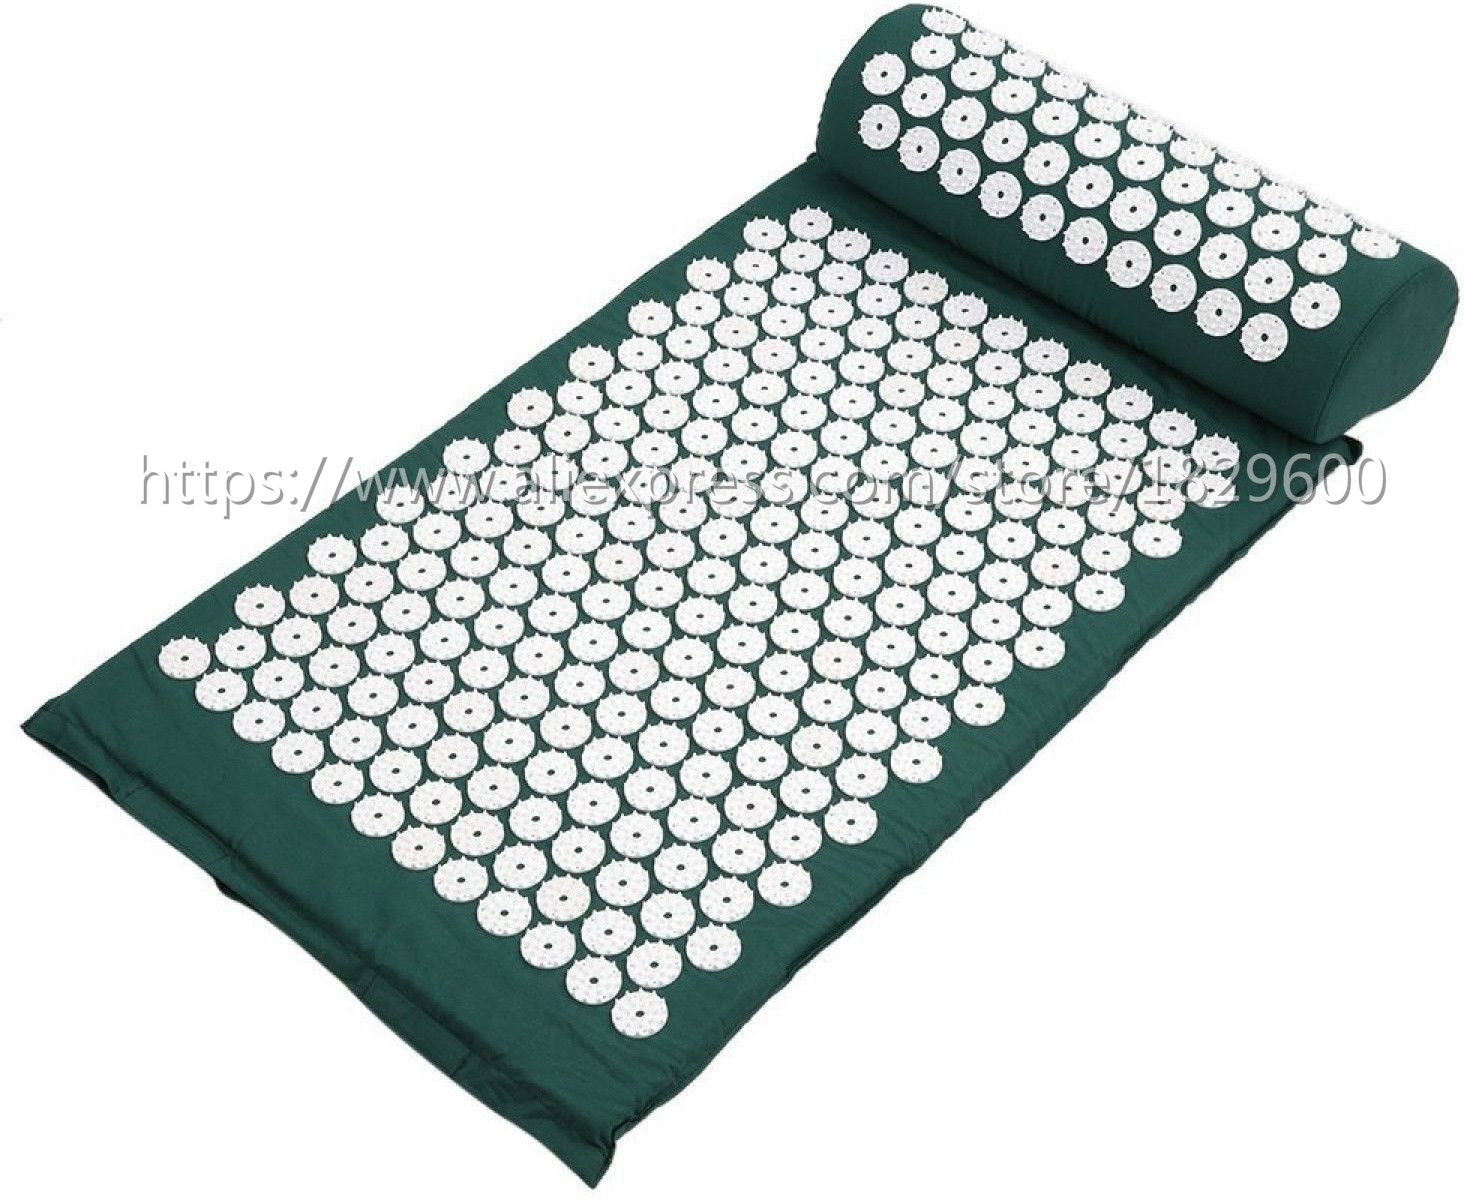 Dropshipping Acupressure Massager Mat Relieve Stress Pain Yoga Mat Natural Relief Stress Tension Body Massage Pillow Cushion